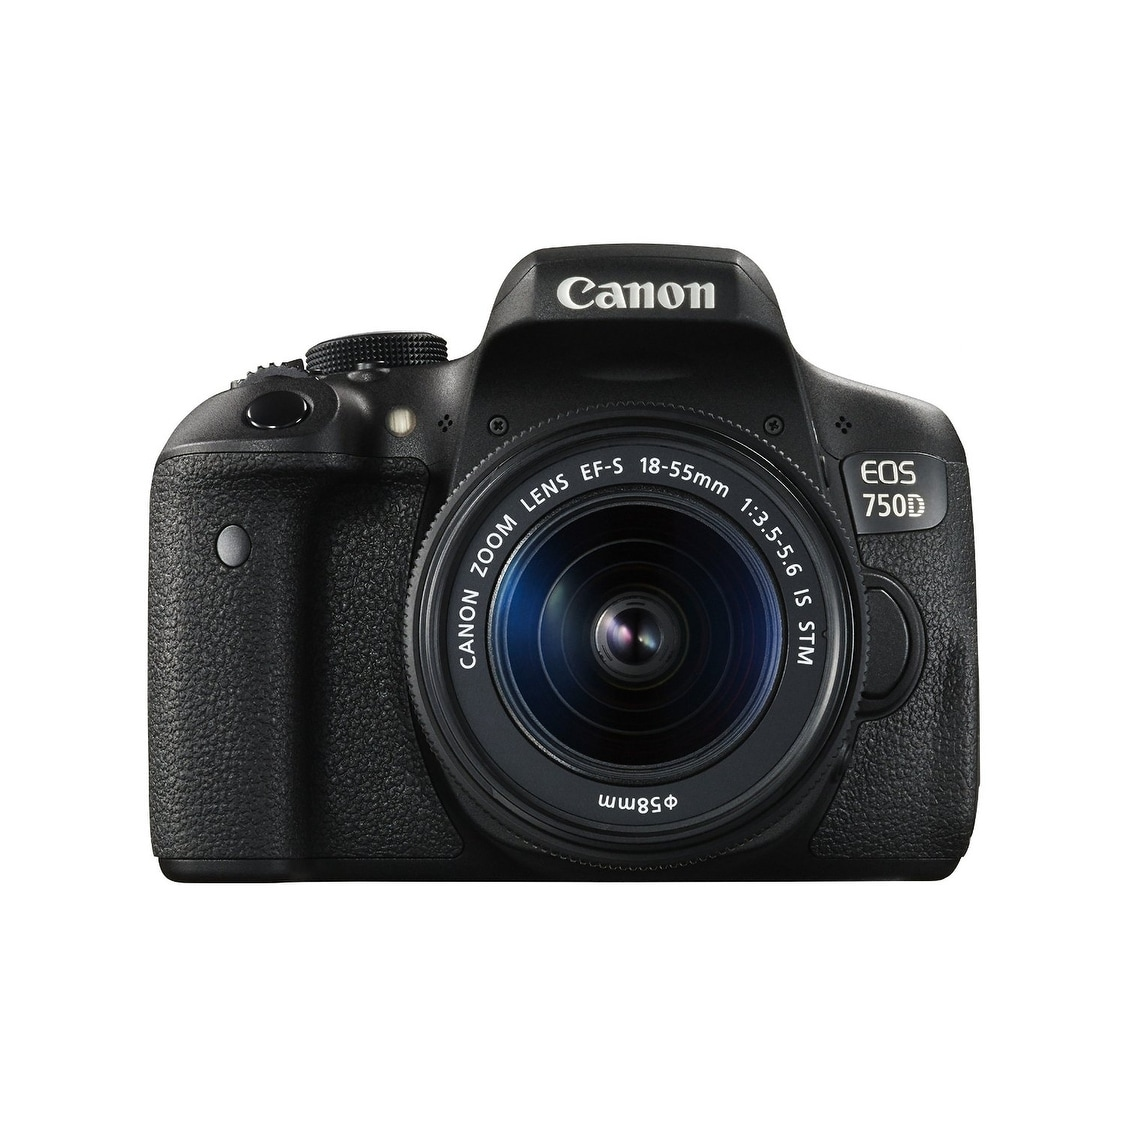 Shop Canon Eos 750d Digital Slr Camera With 18 55mm Is Stm Intl 760d Body Only Dslr 760 Bo Model Free Shipping Today 19398121